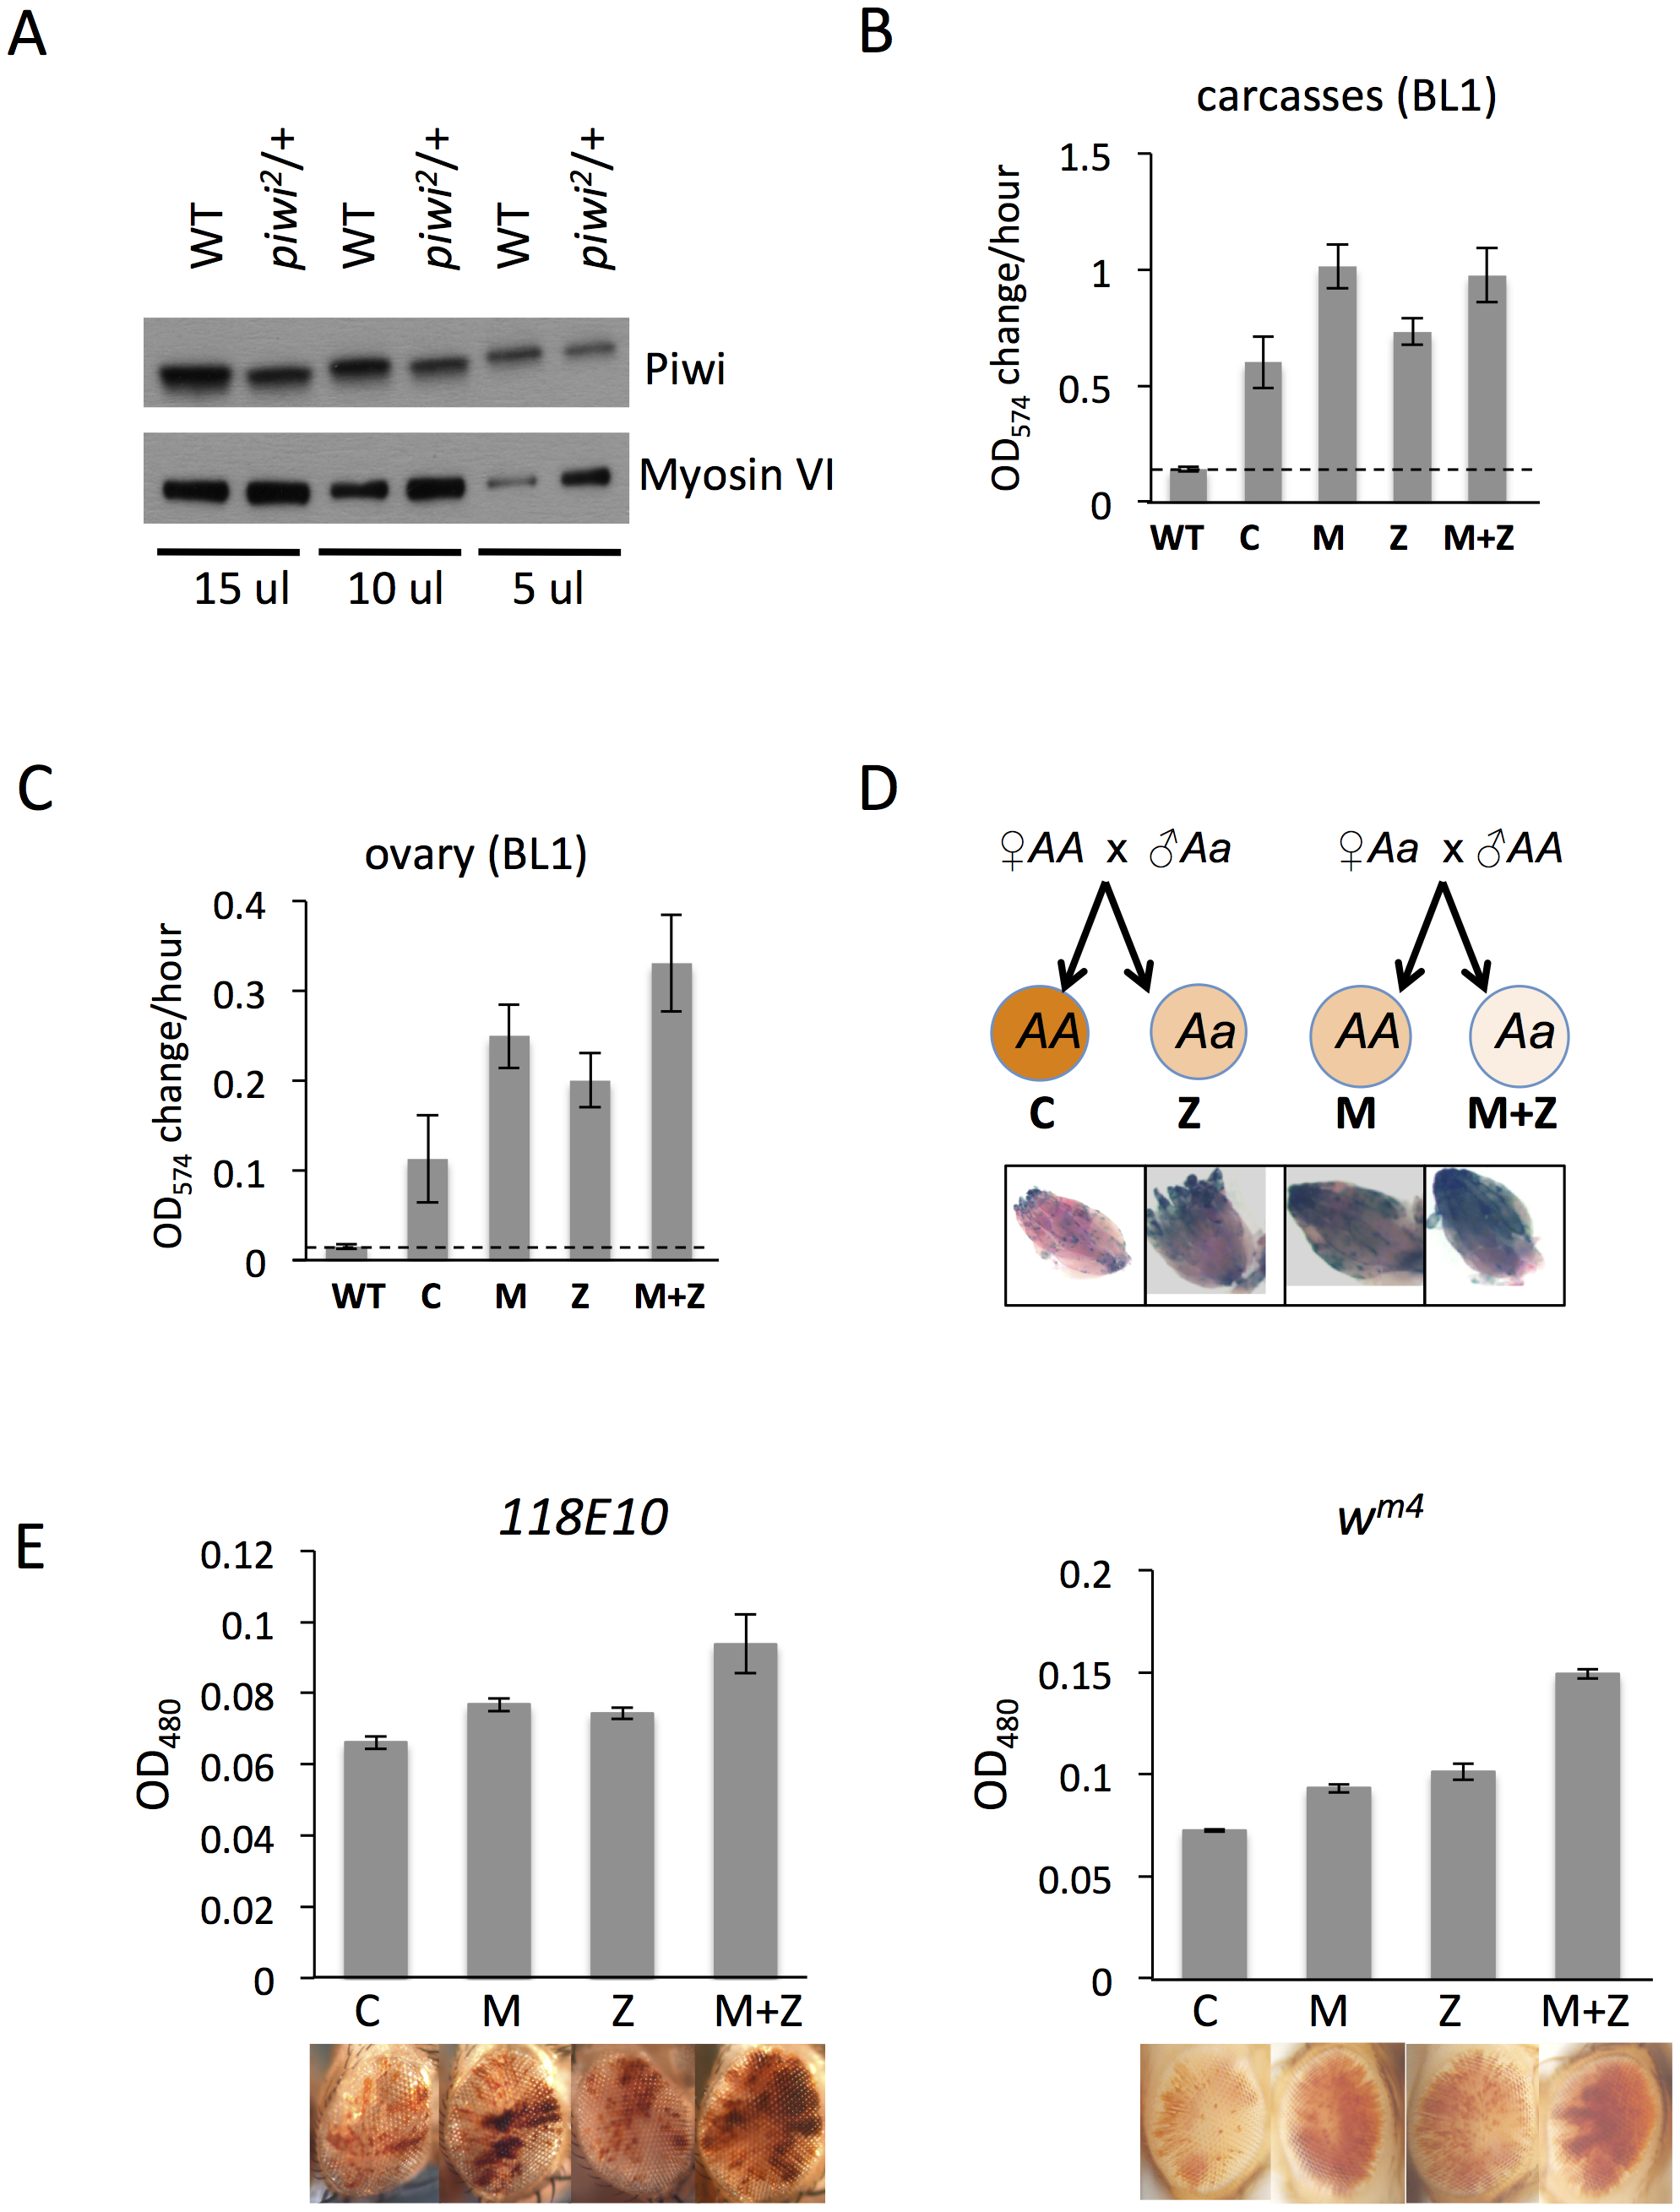 The suppression of variegation in response to Piwi depletion reflects the reduced level of Piwi protein in the early embryo.